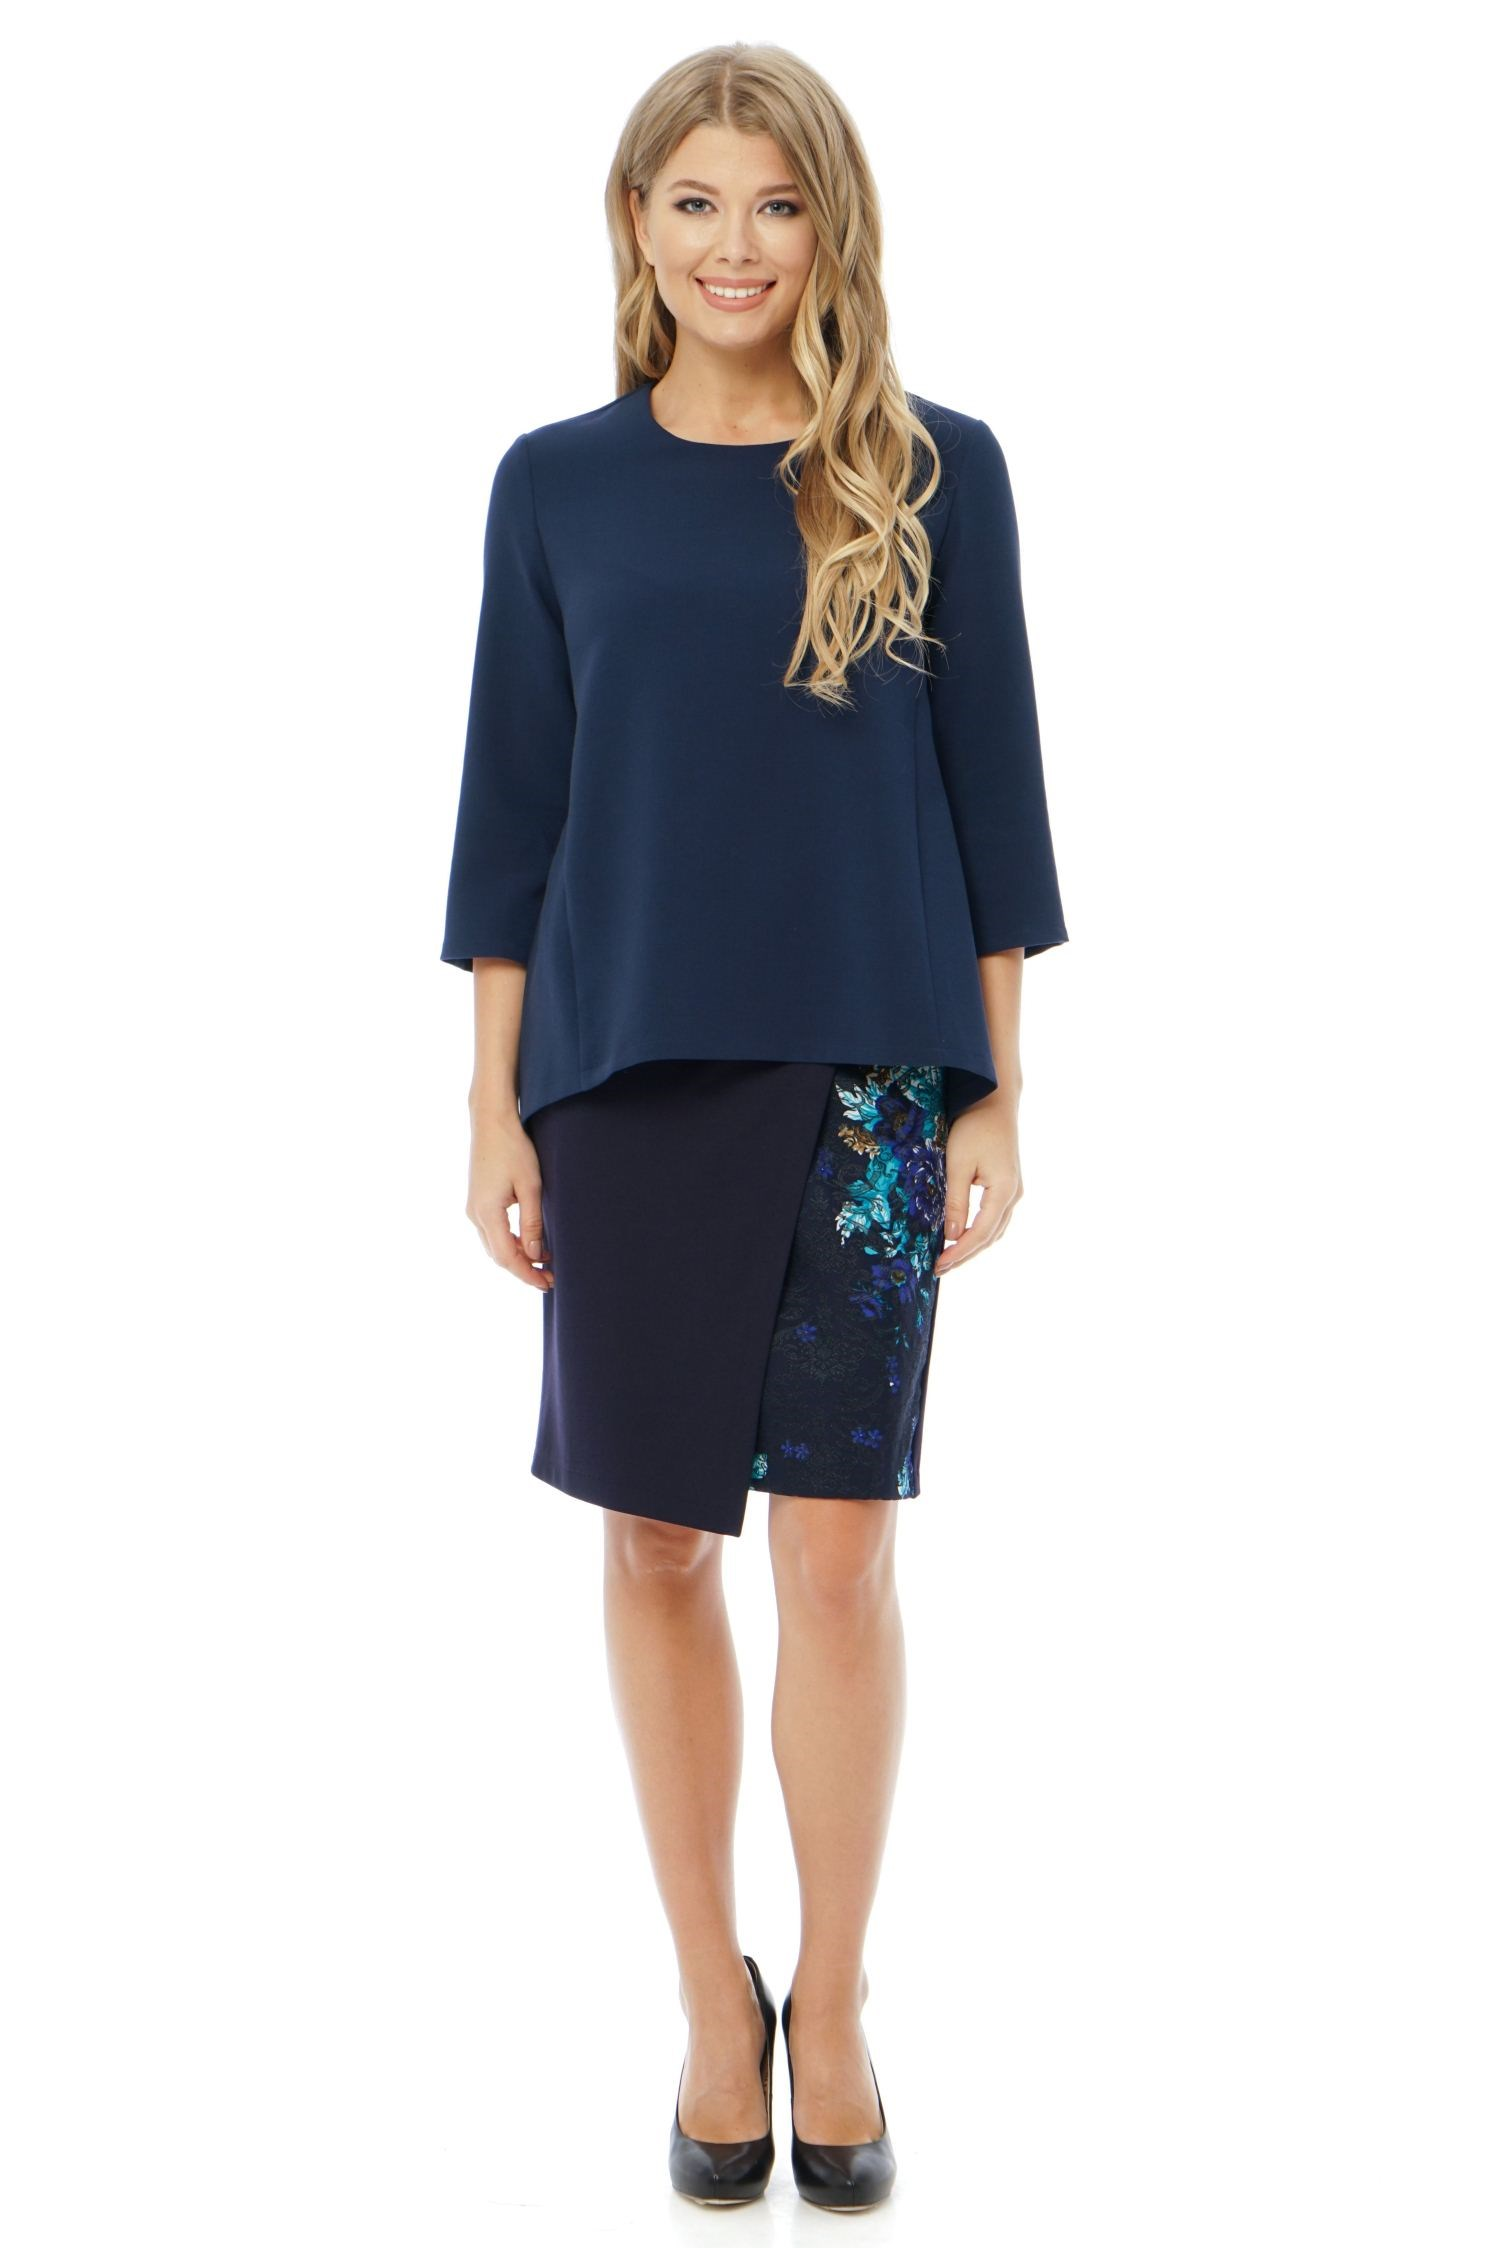 Skirt straight silhouette, with decorative smell front, knee length. светильник потолочный eglo canuma 97038